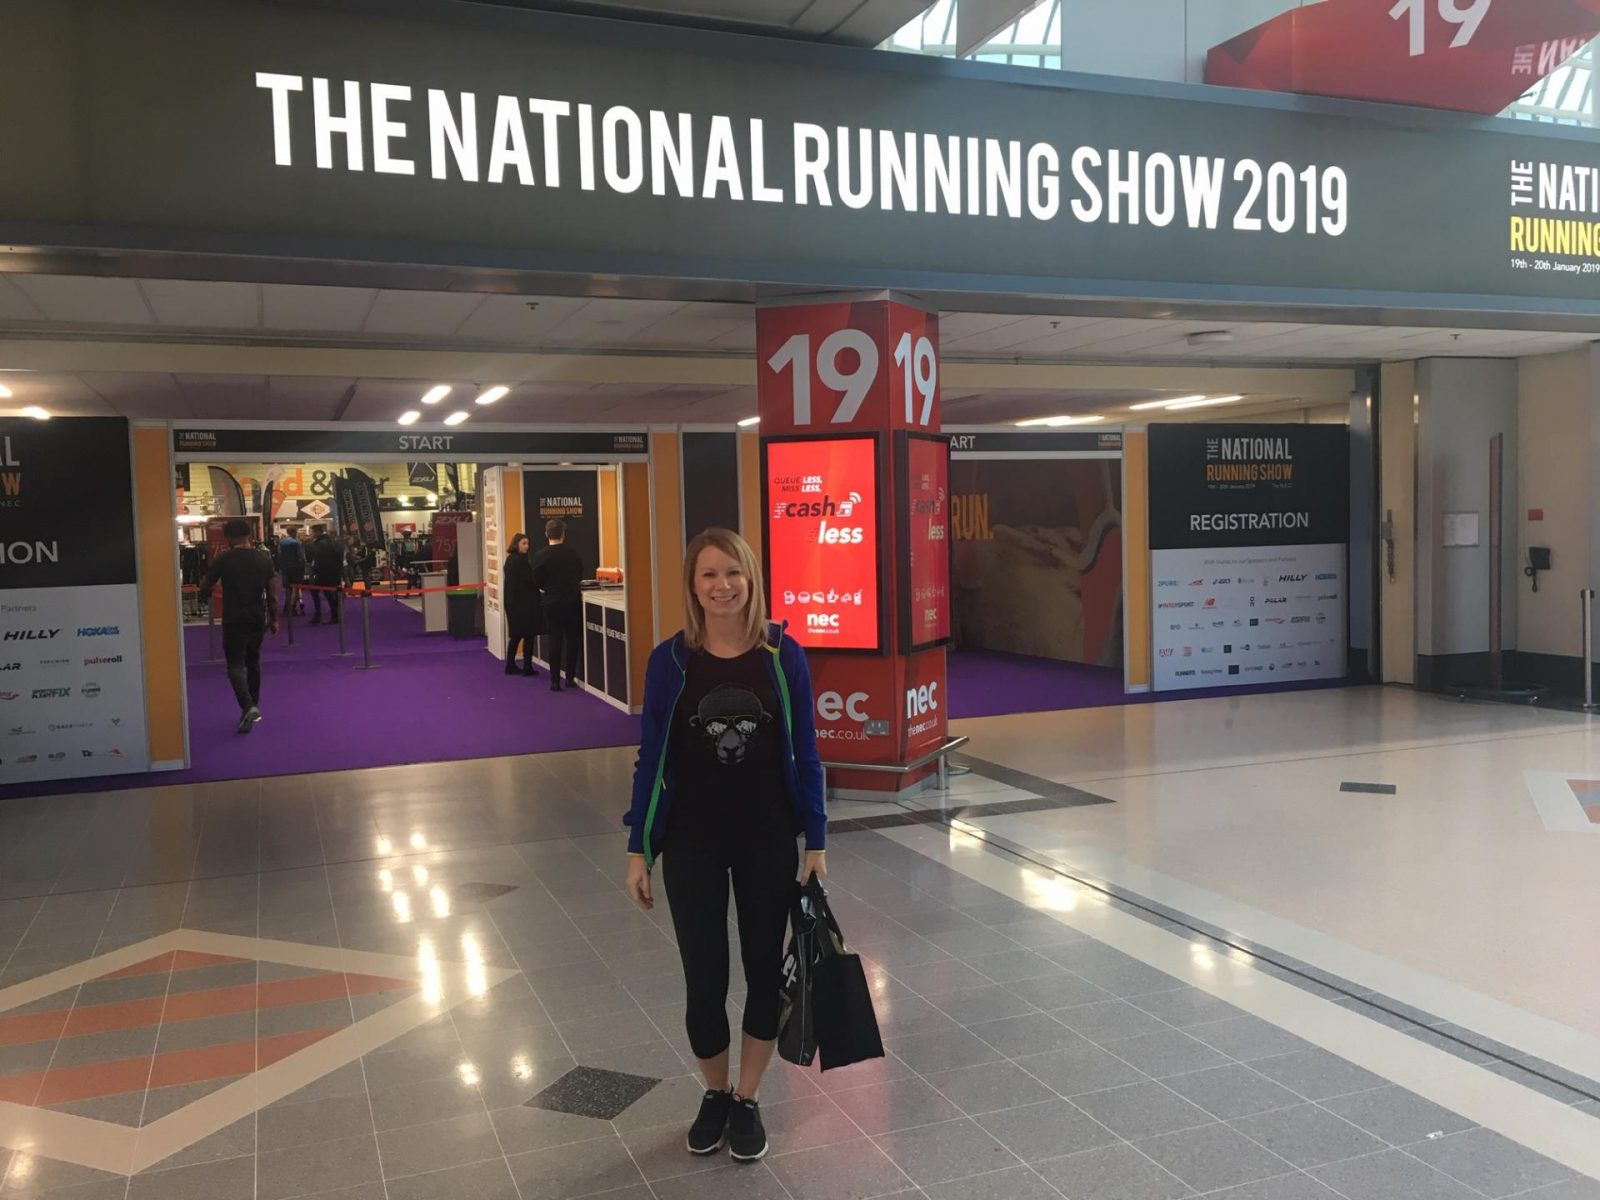 National Running Show 2019